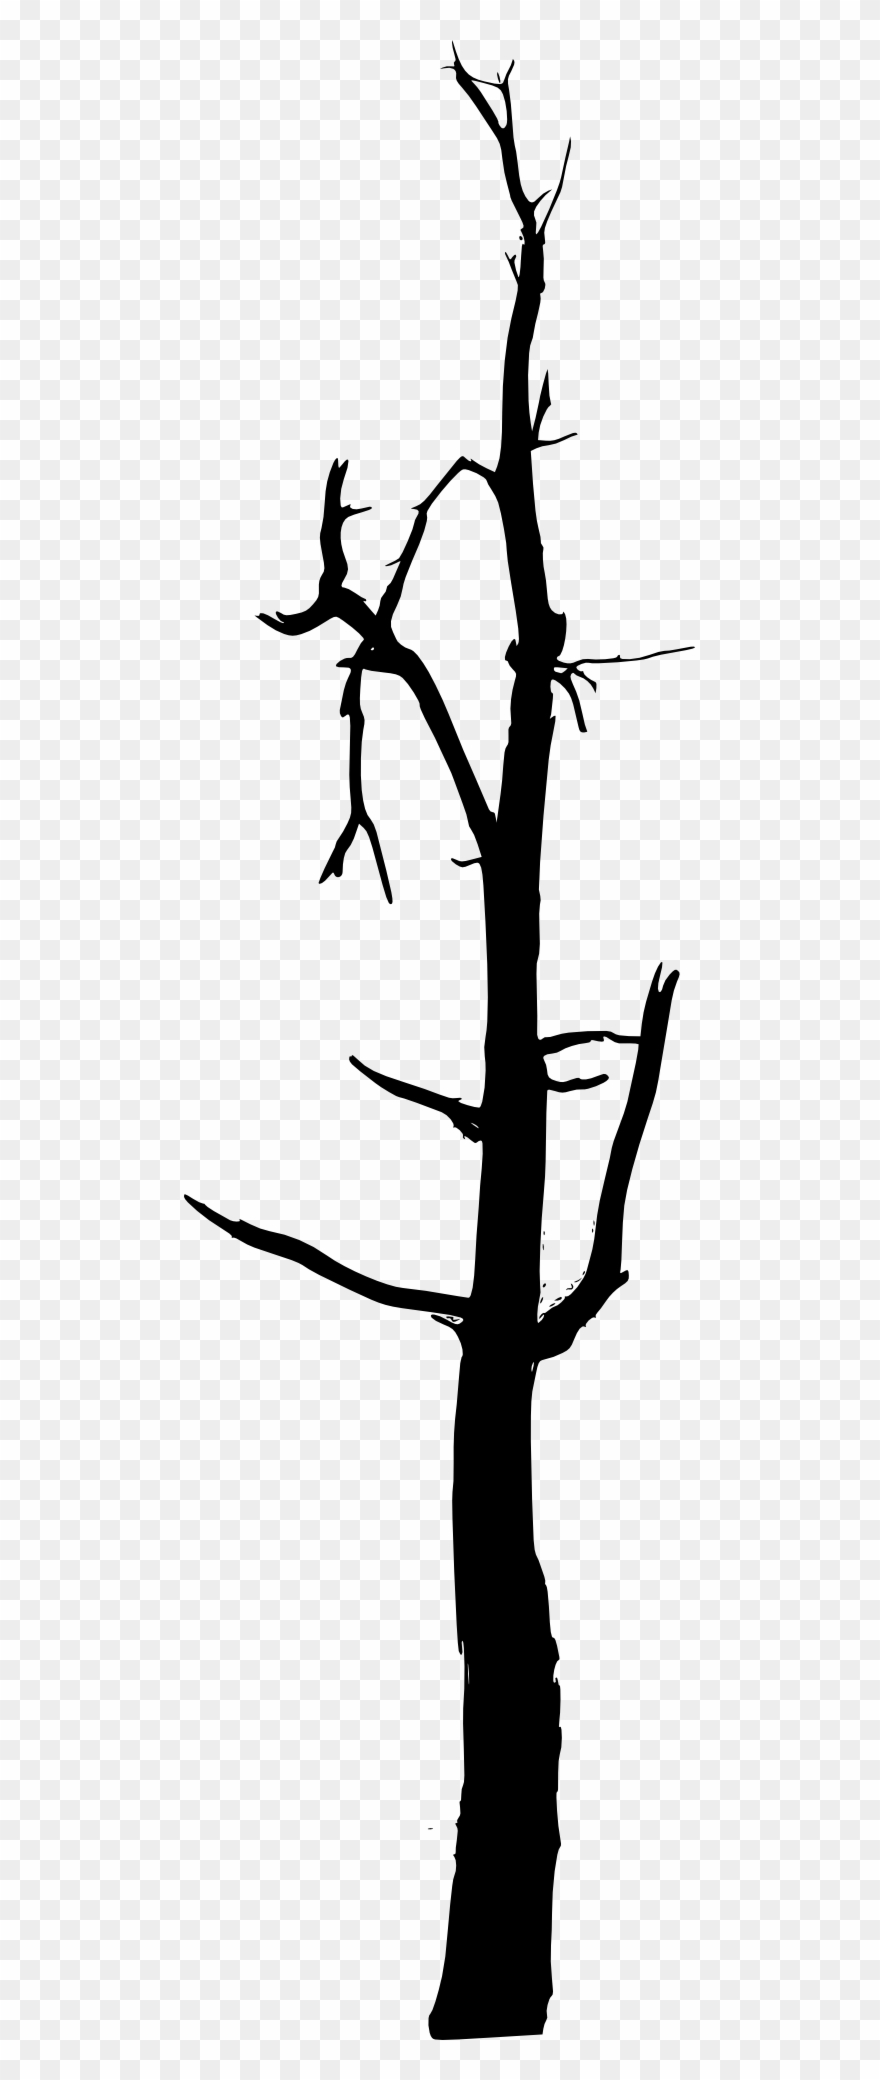 Svg Library Bare Tree Clipart Black And White Simple Bare Tree